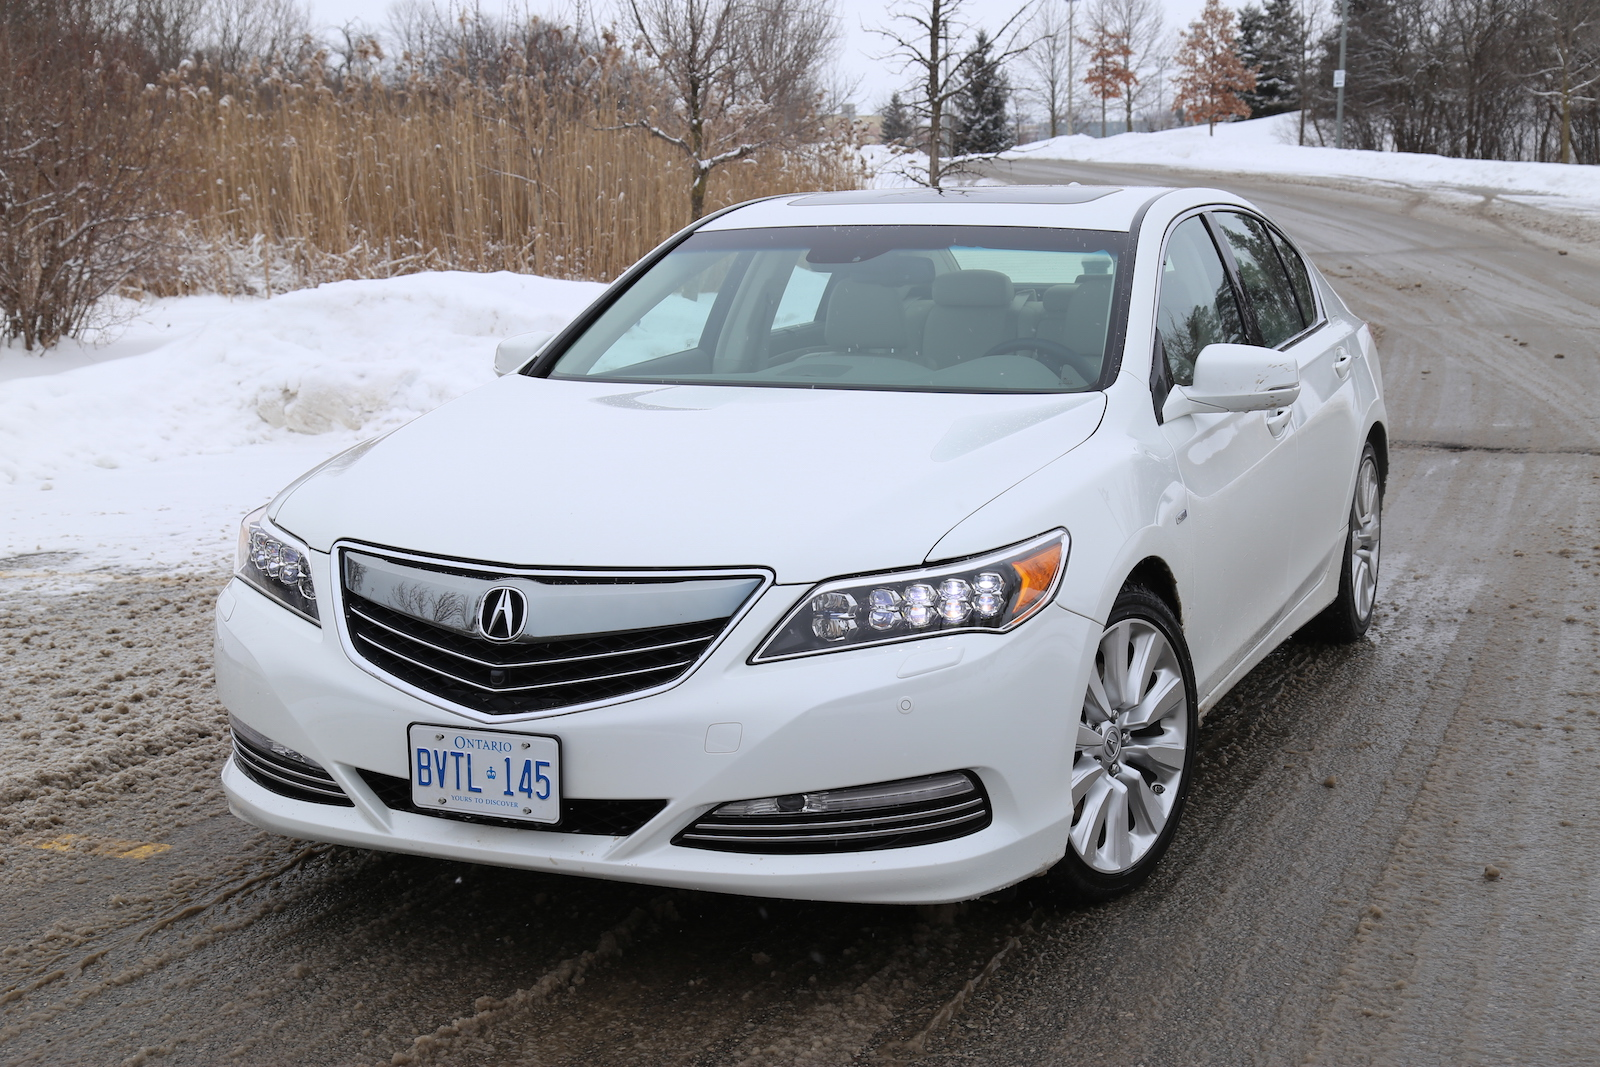 review 2015 acura rlx sport hybrid canadian auto review. Black Bedroom Furniture Sets. Home Design Ideas